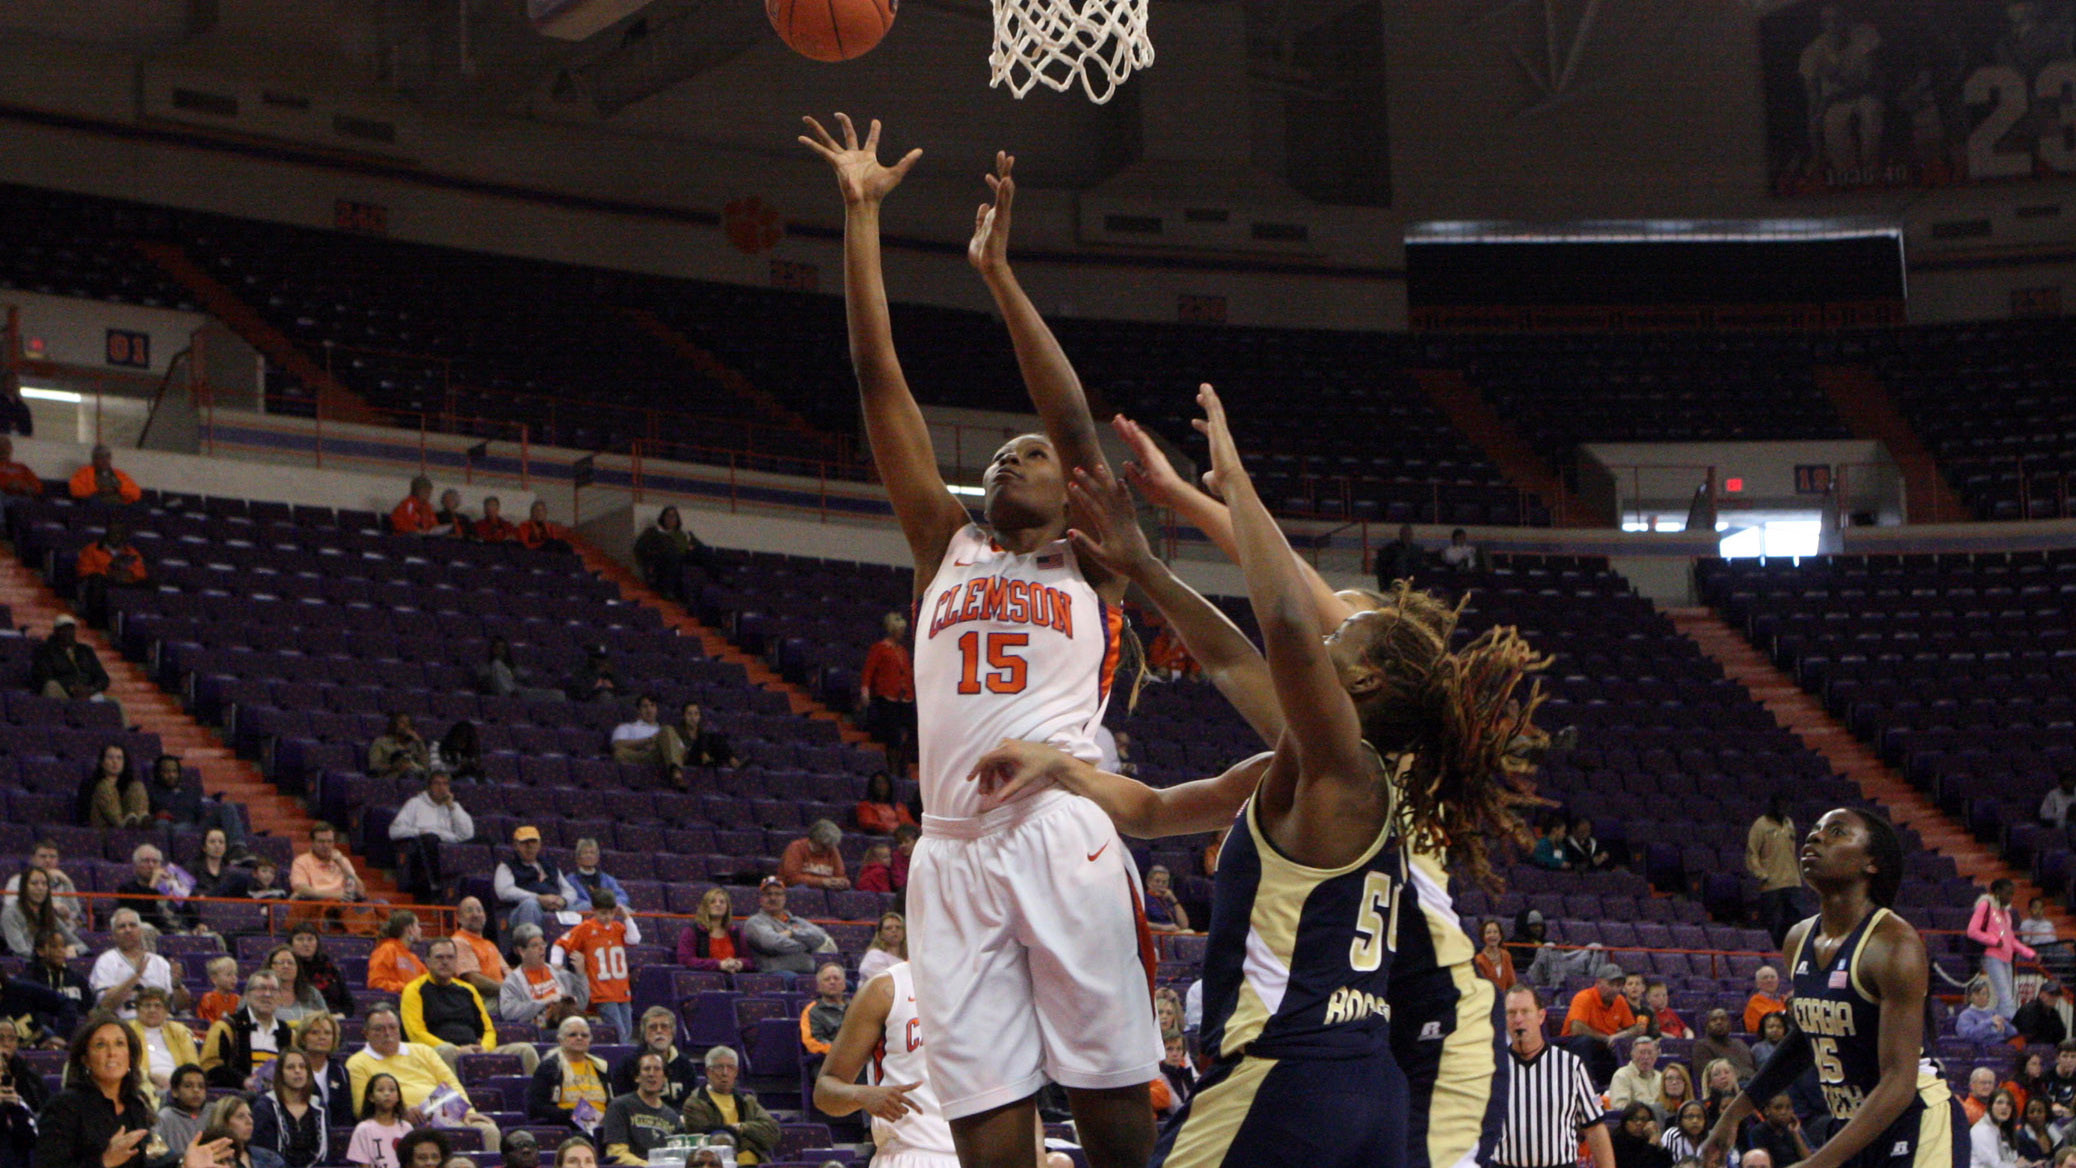 Clemson Takes On Boston College in Televised Hoops Contest